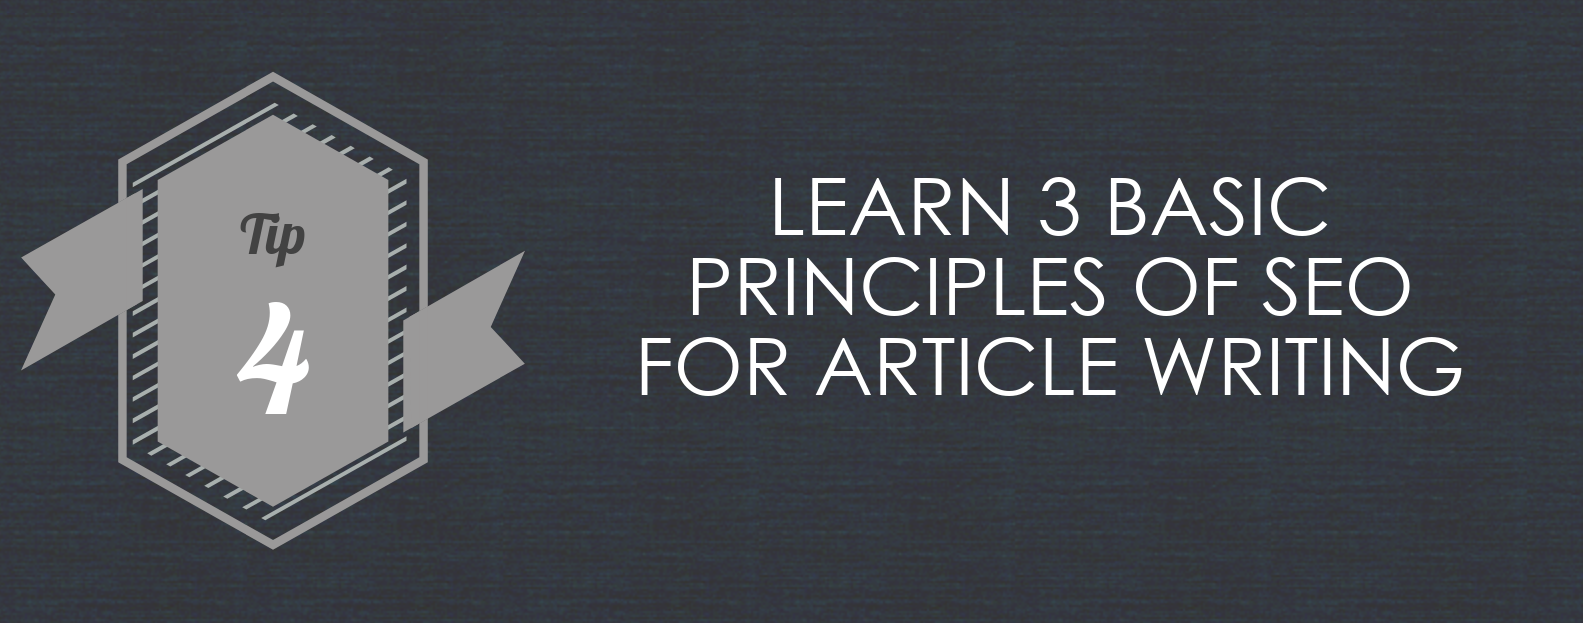 article writing tips 4